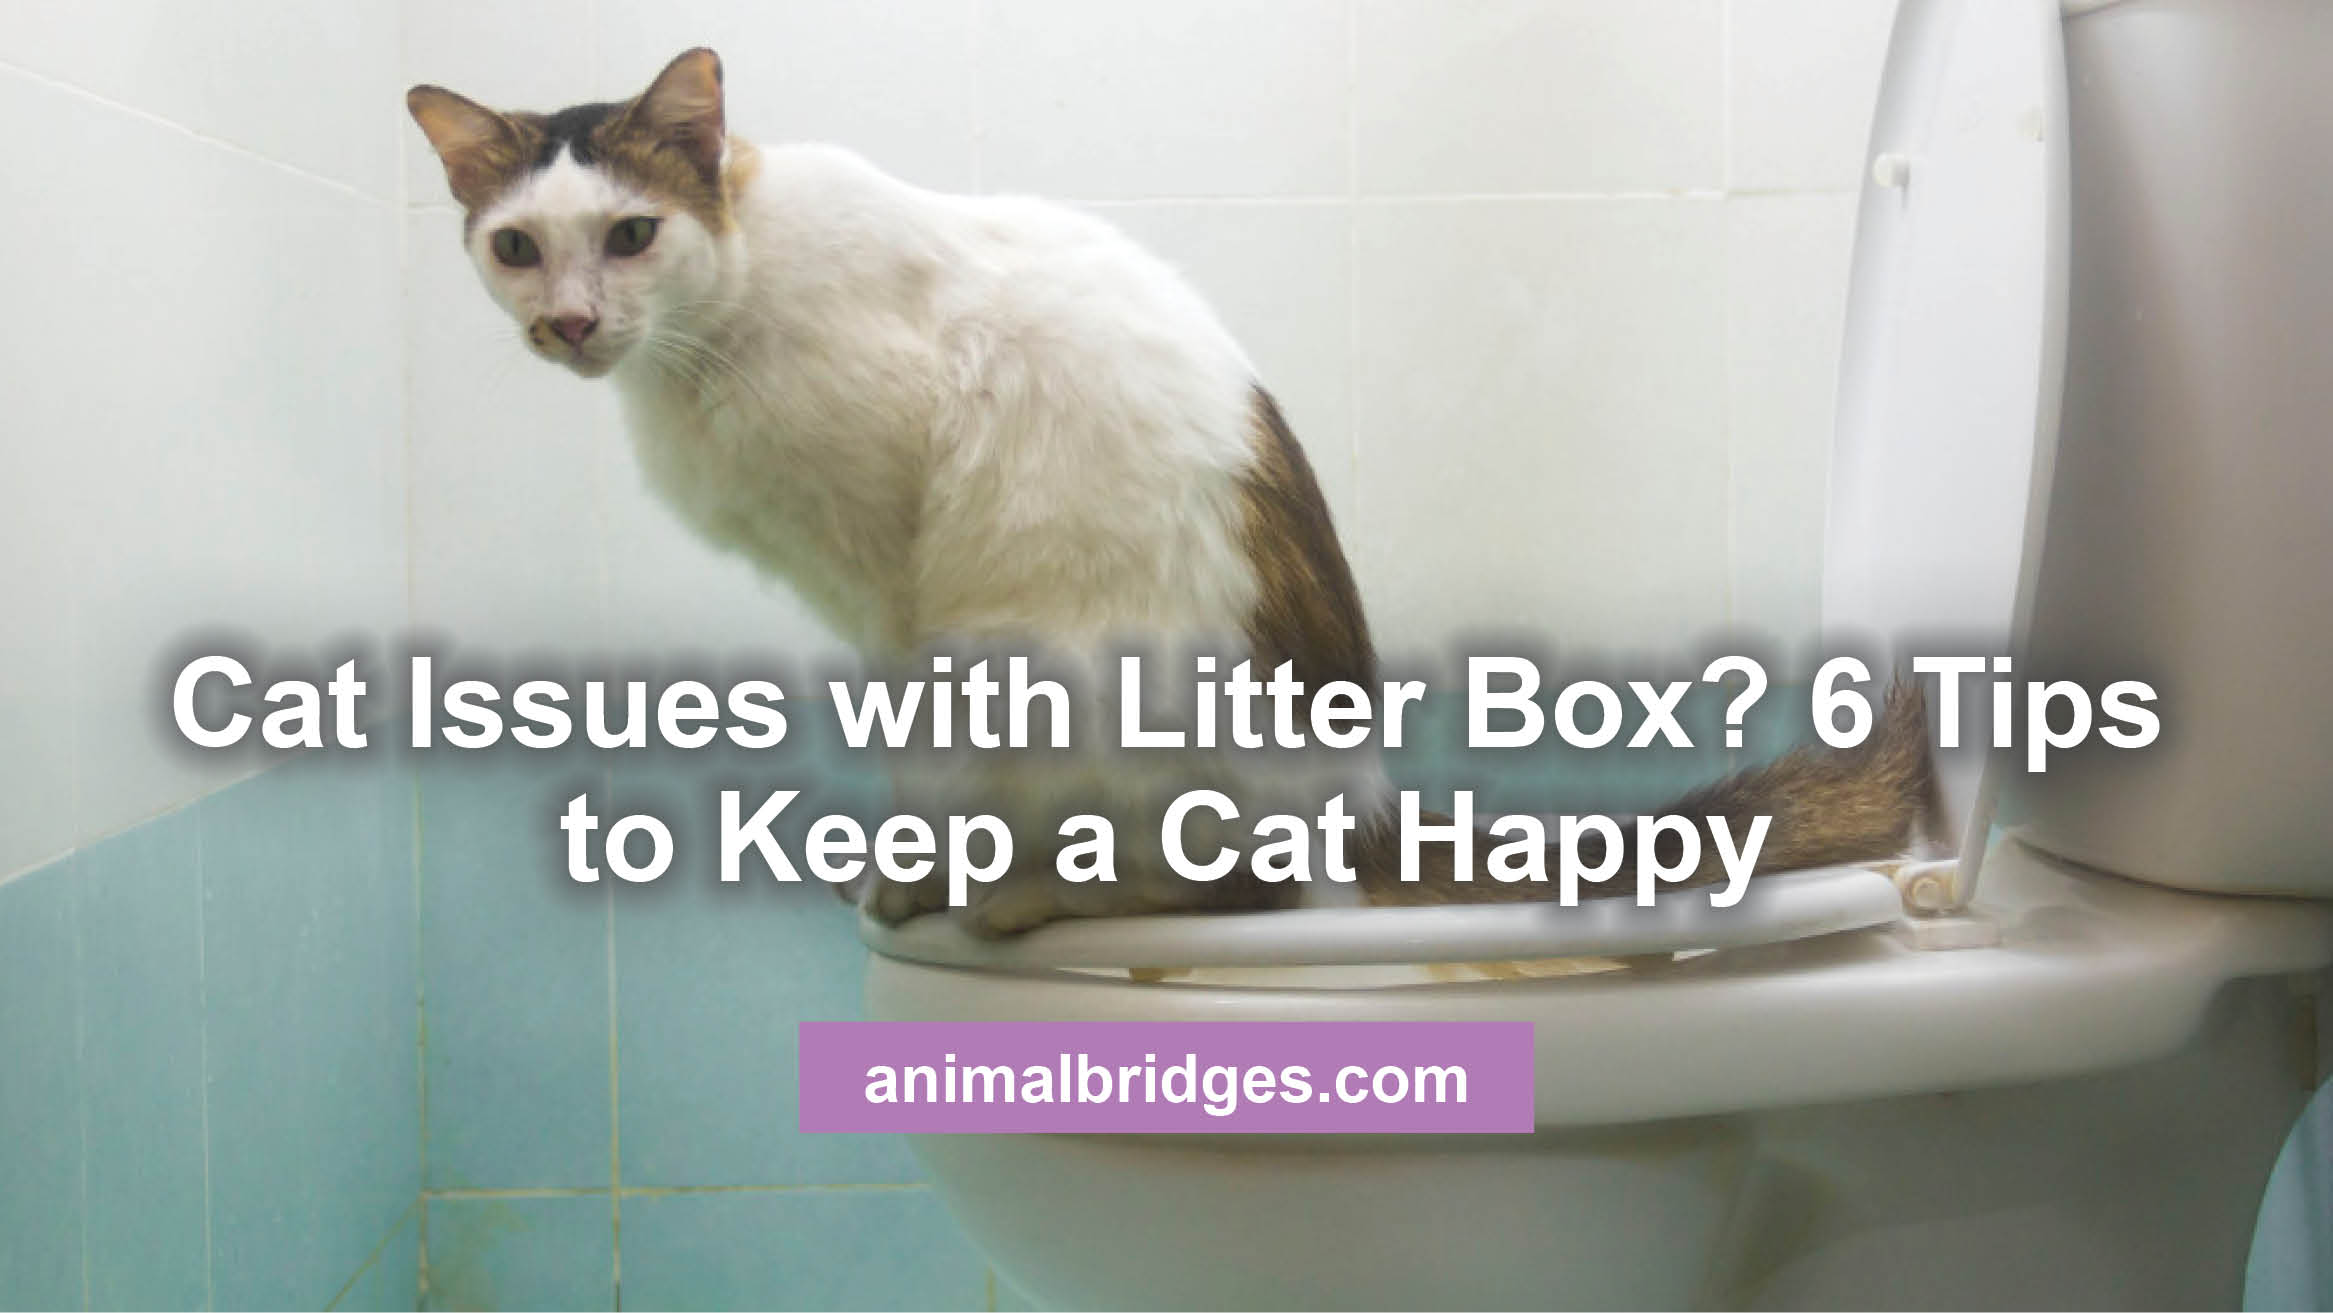 Cat issues with litter box